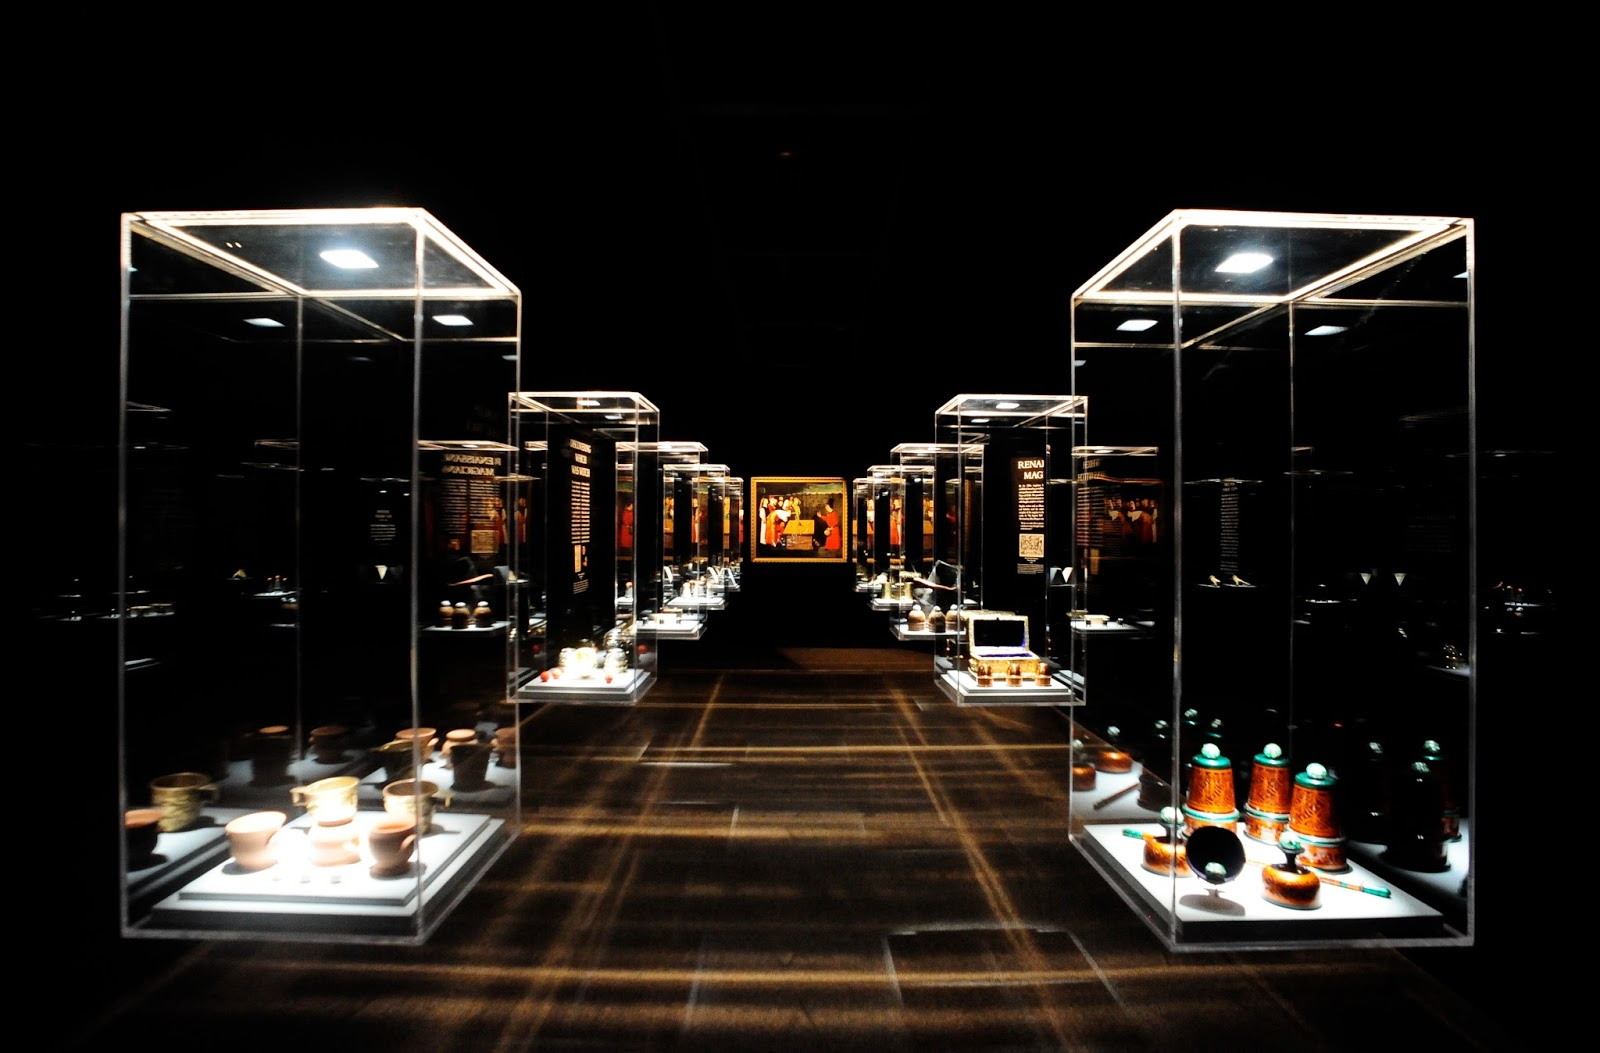 Exhibition Display Design : Revealing process to relieve museum visitor boredom